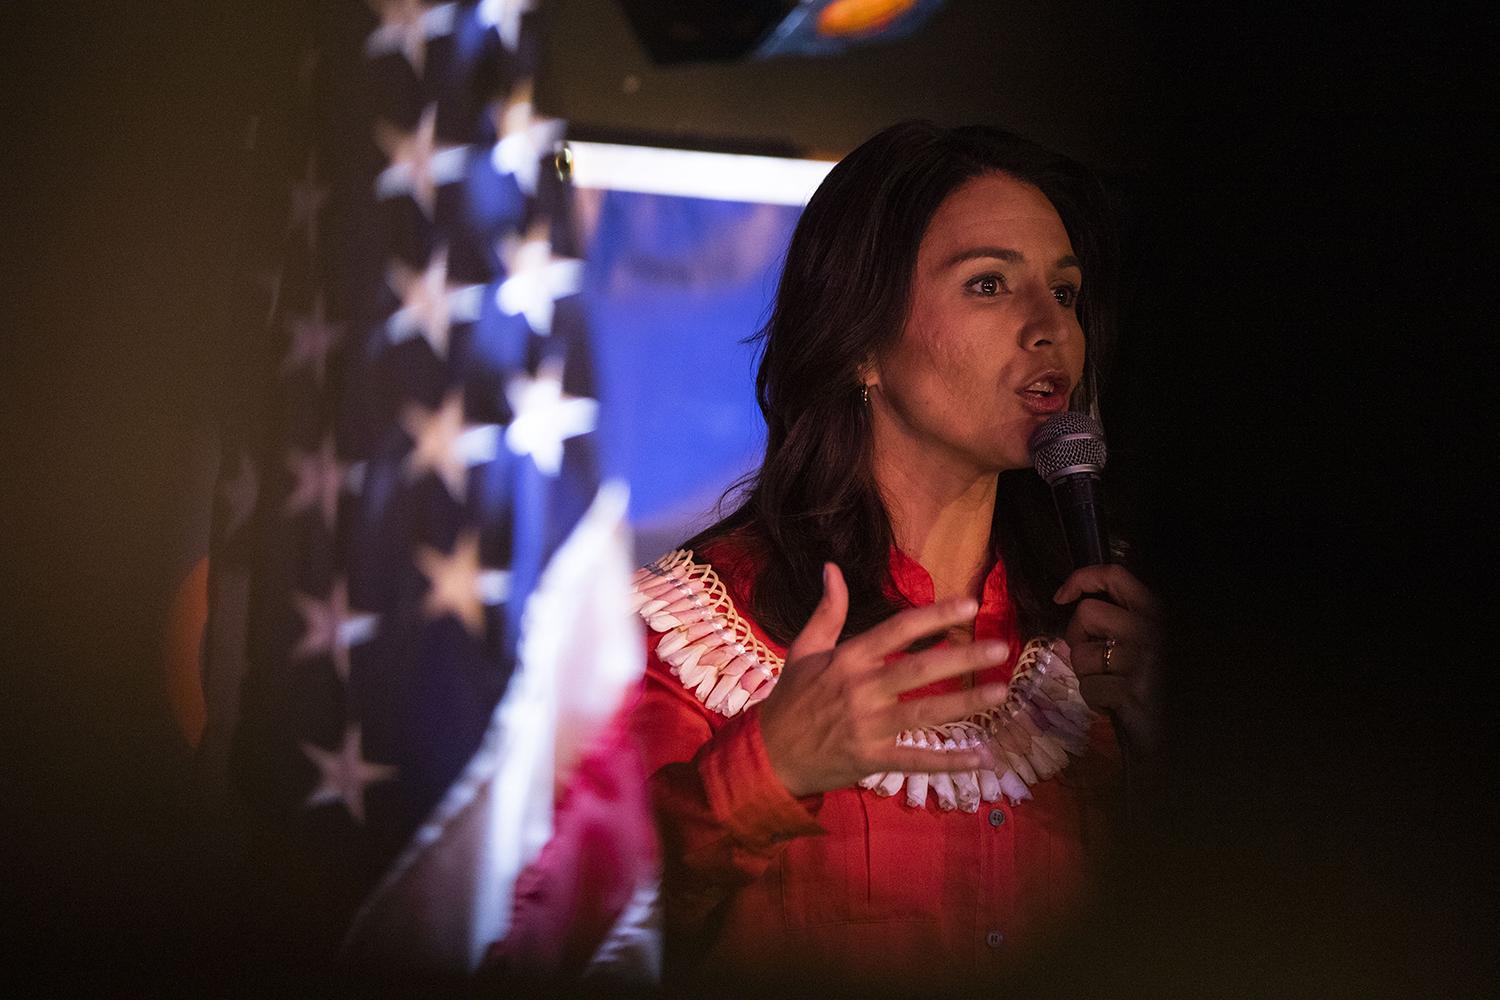 U.S.+Rep.+Tulsi+Gabbard%2C+D-Hawaii%2C+speaks+during+an+event+at+the+The+Mill+on+Thursday%2C+February+21%2C+2019.+Rep.+Gabbard+visited+Iowa+City+on+Thursday+after+having+cancelled+stops+in+the+area+last+week+due+to+inclement+weather.+